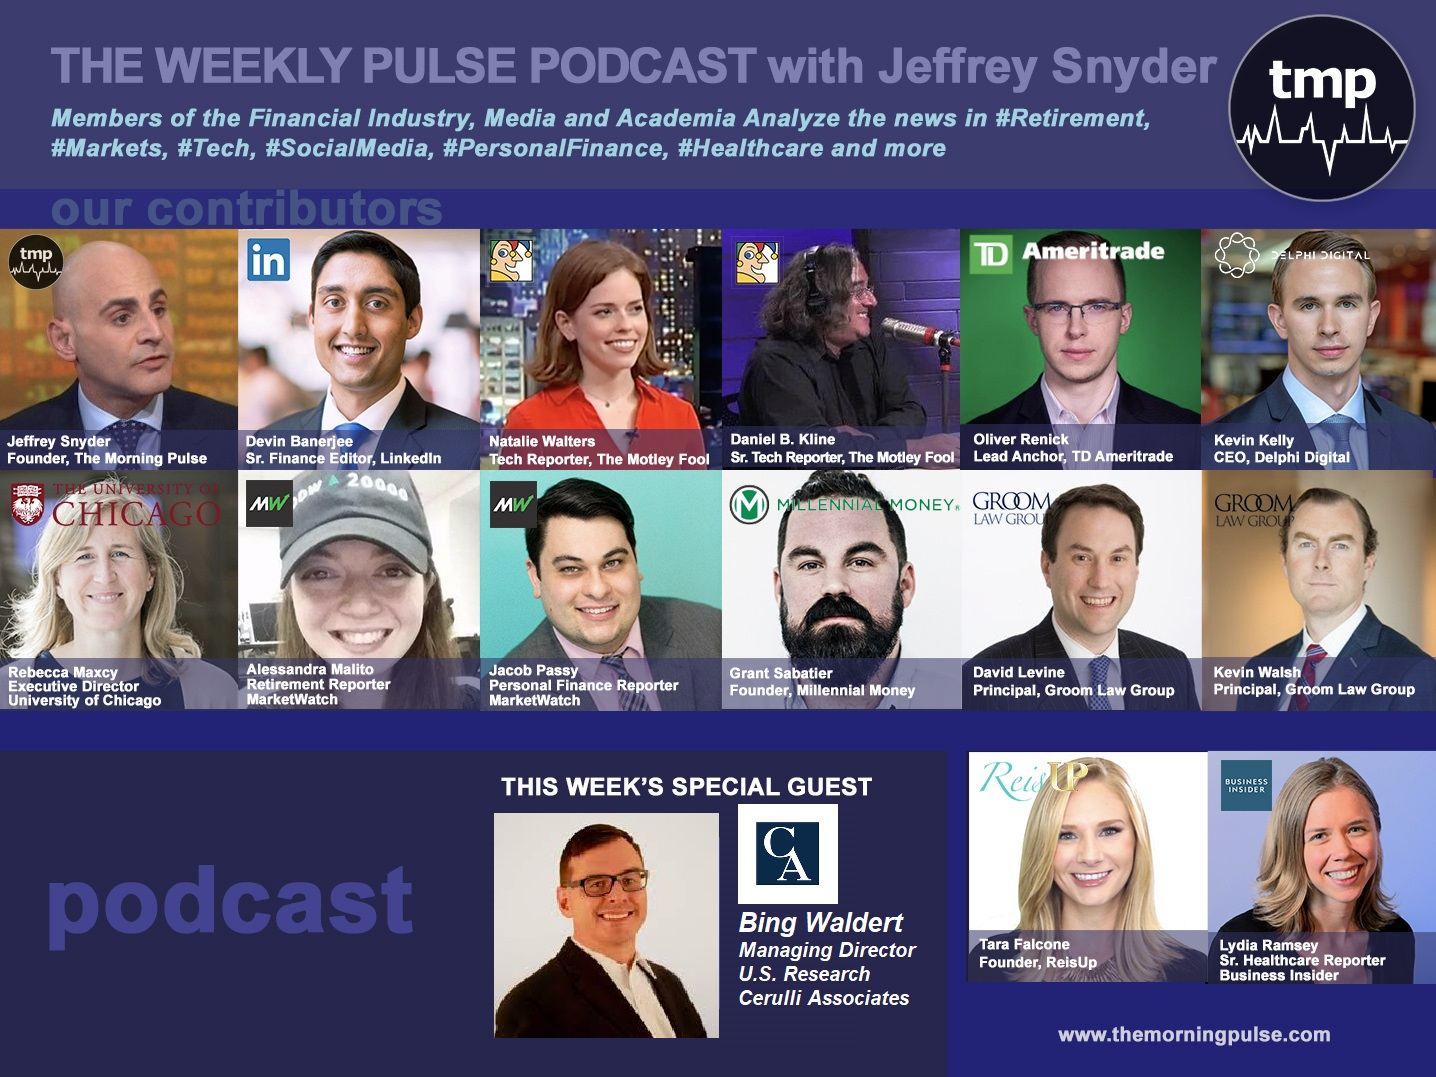 The Weekly Pulse Podcast for Sunday, April 28, 2019